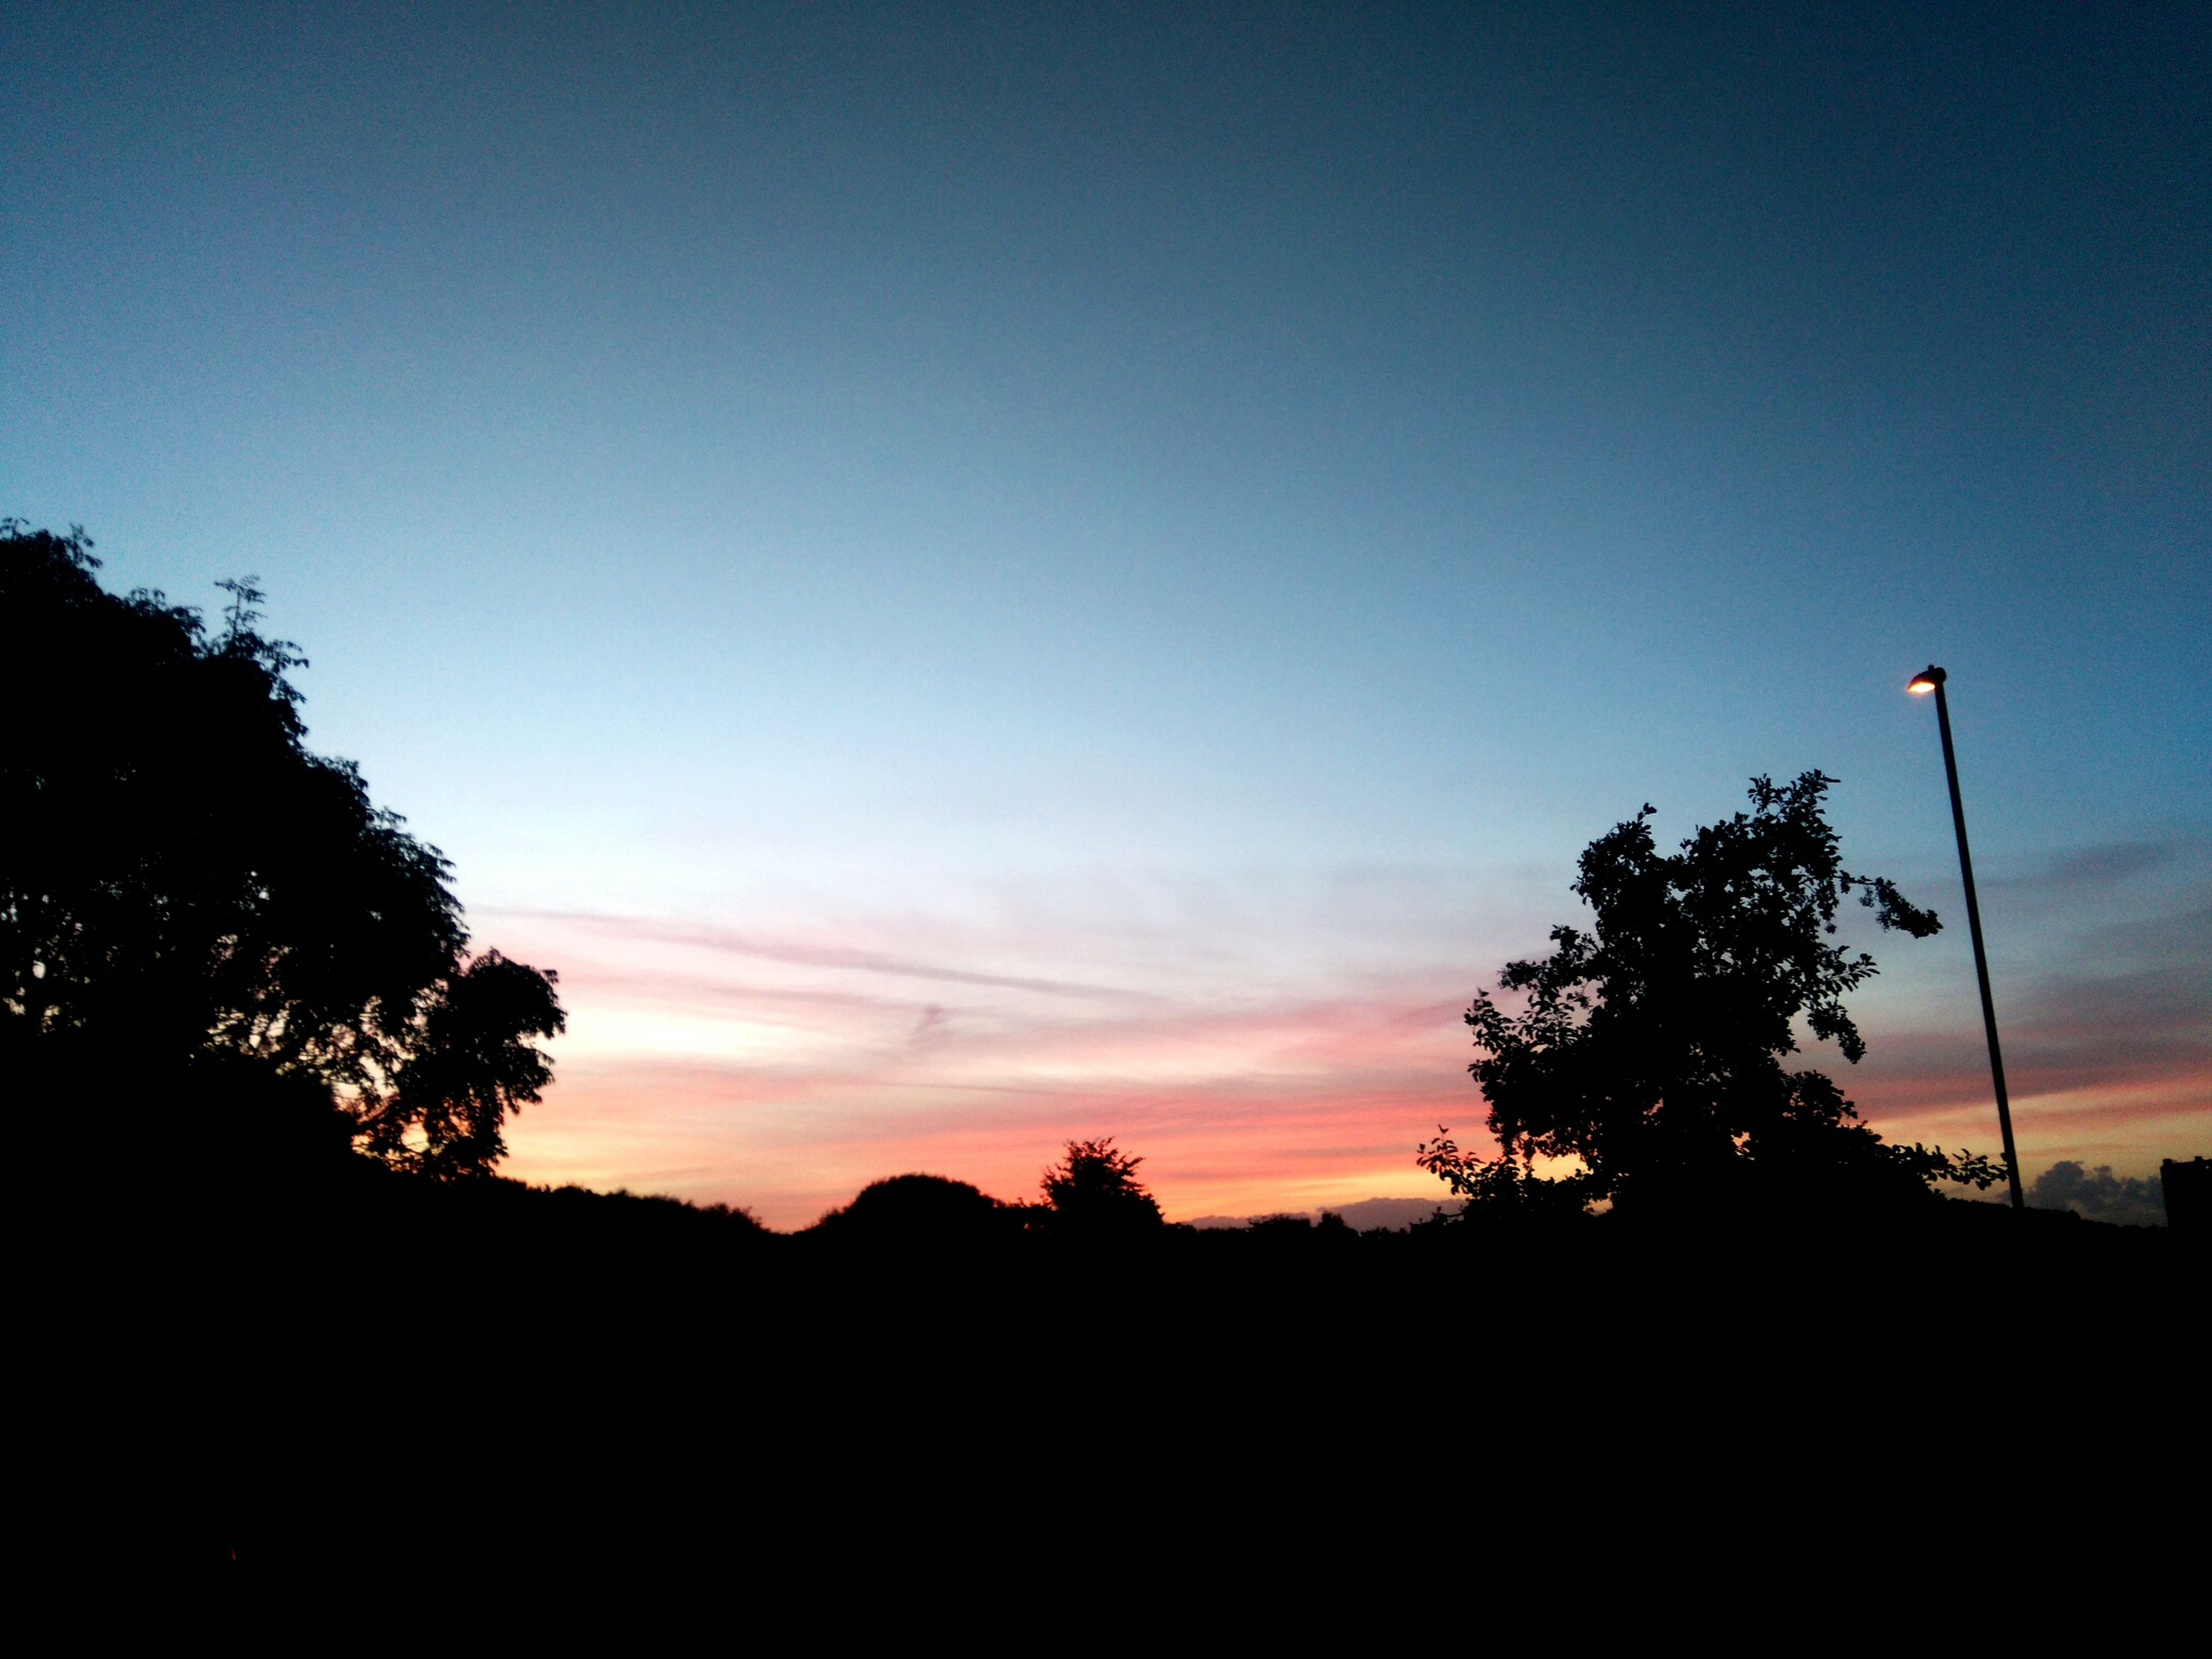 silhouette, tree, sunset, tranquil scene, scenics, tranquility, outline, landscape, copy space, beauty in nature, dark, sky, nature, calm, remote, solitude, outdoors, growth, non-urban scene, cloud, majestic, no people